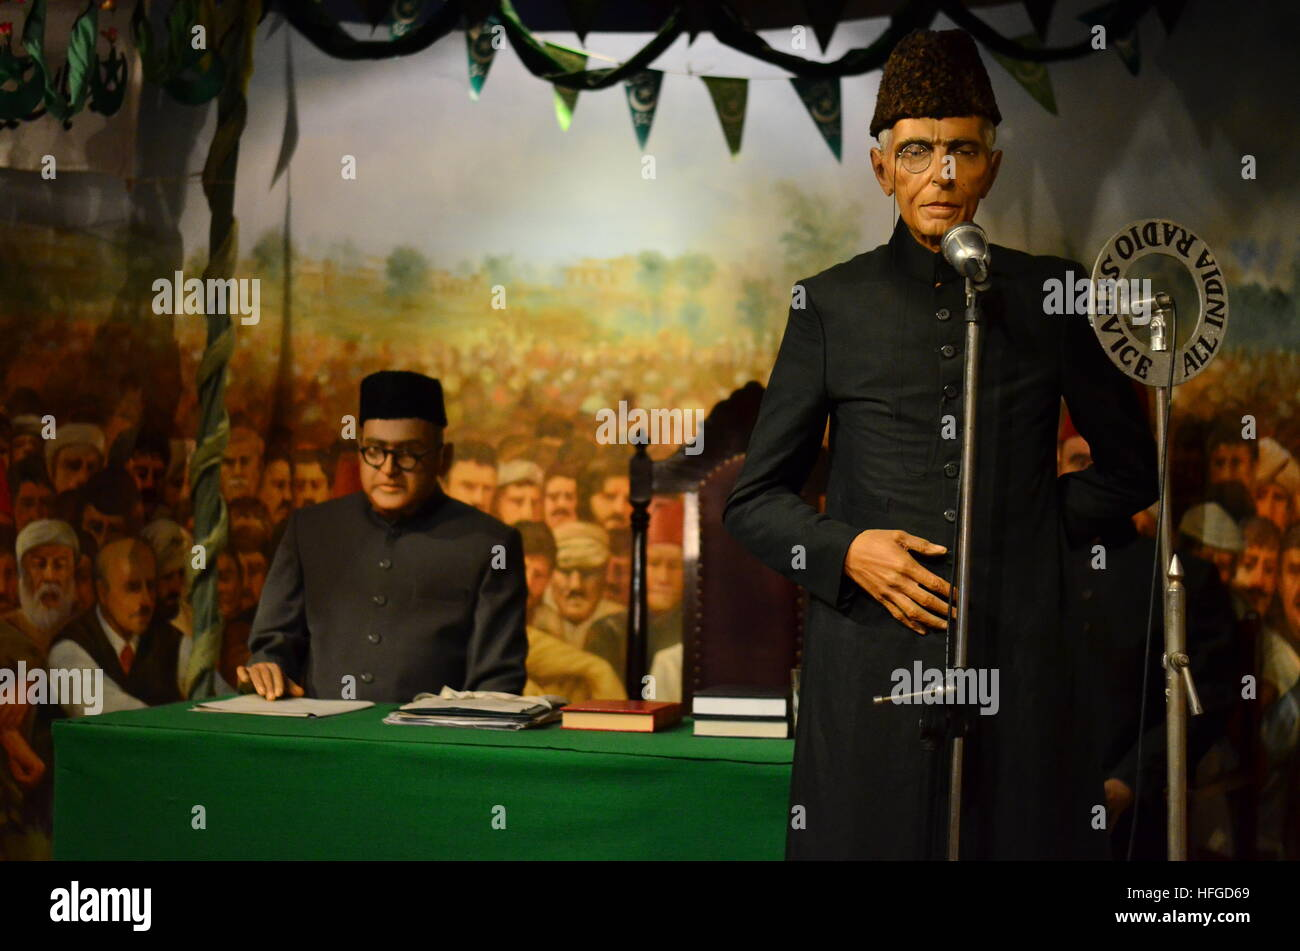 Quaid-e-Azam address to people in 1940 giving Lahore Resolution - Stock Image